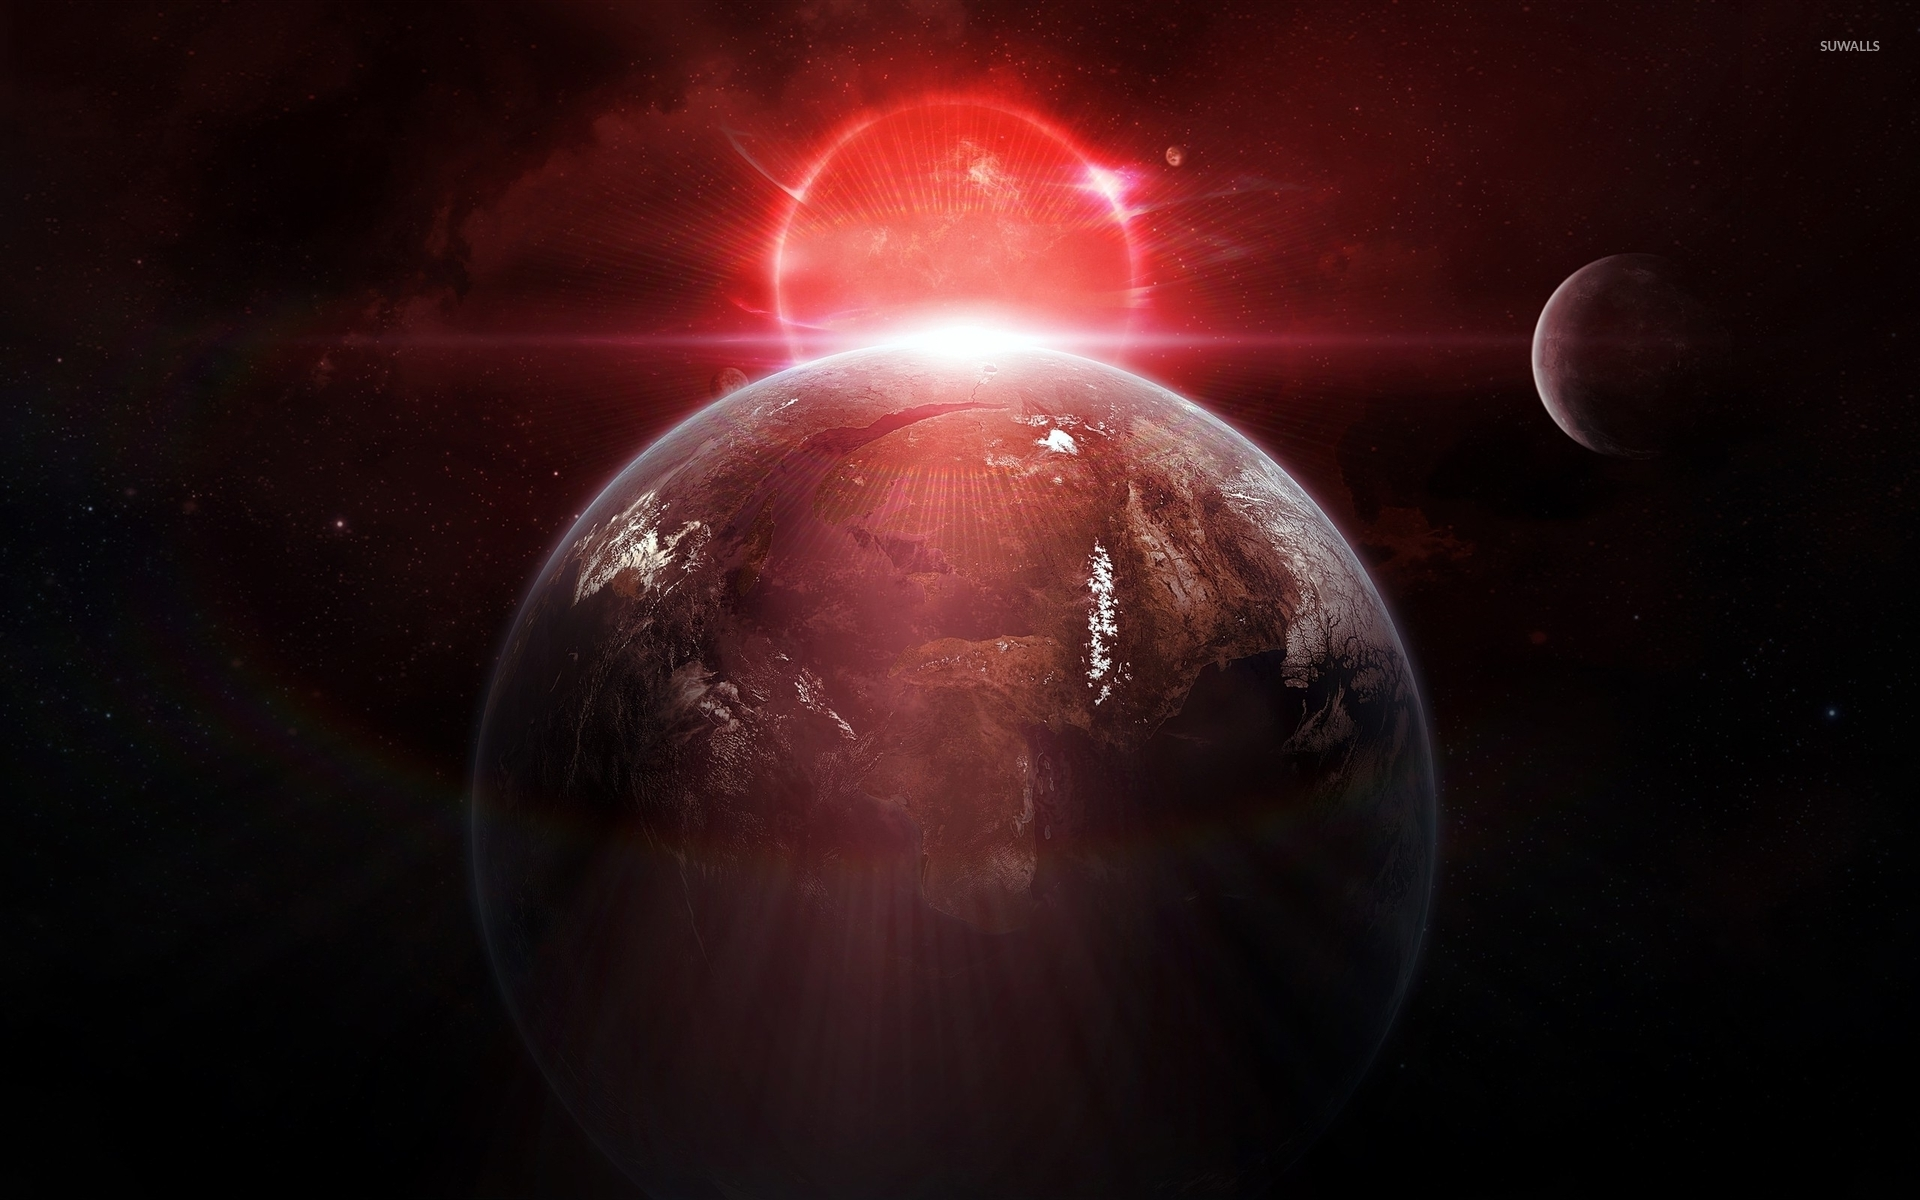 red sun behind the planet wallpaper space wallpapers